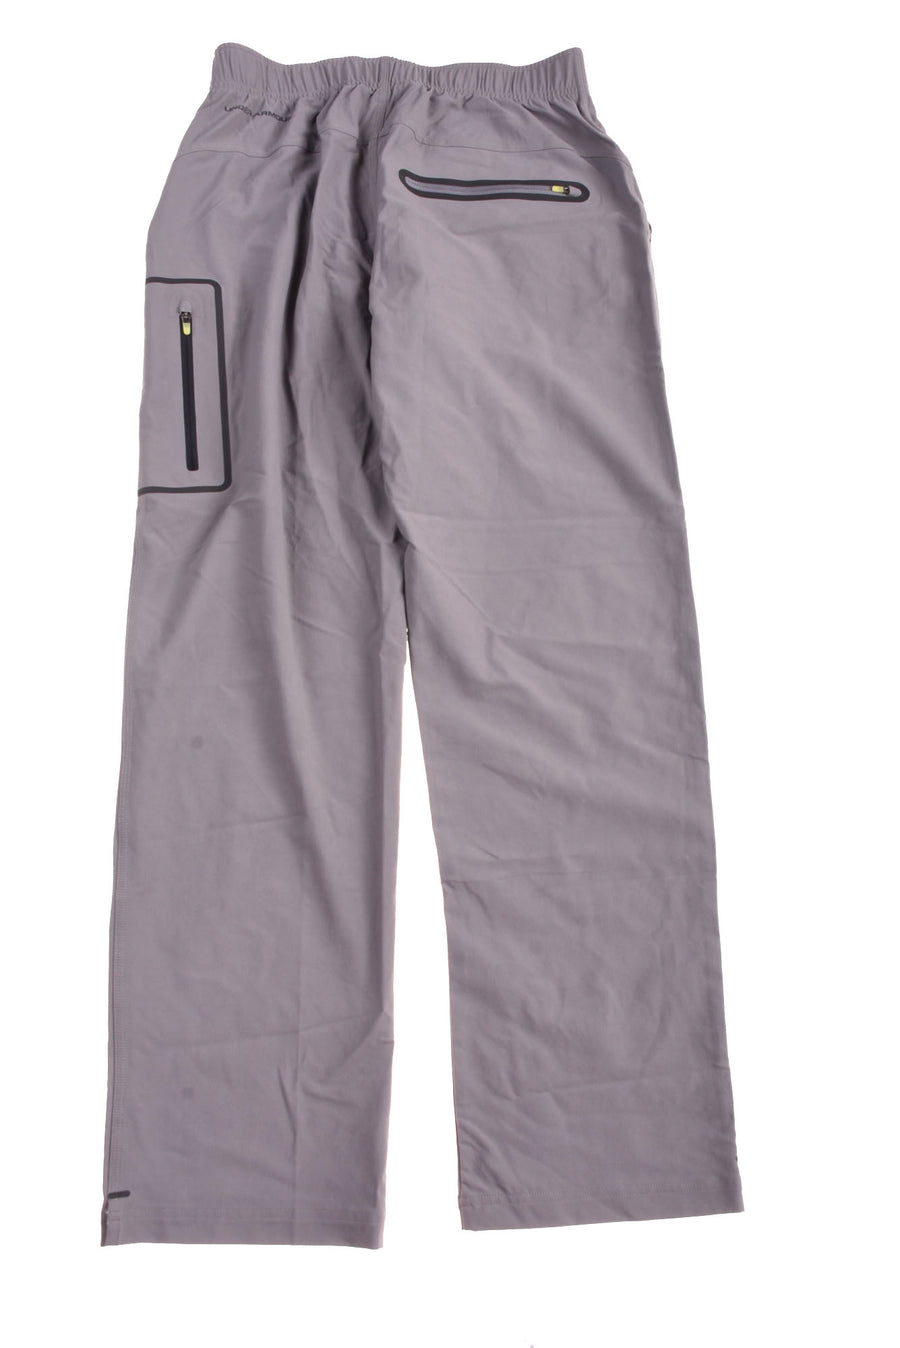 NEW Under Armour Men's Pants Medium Gray